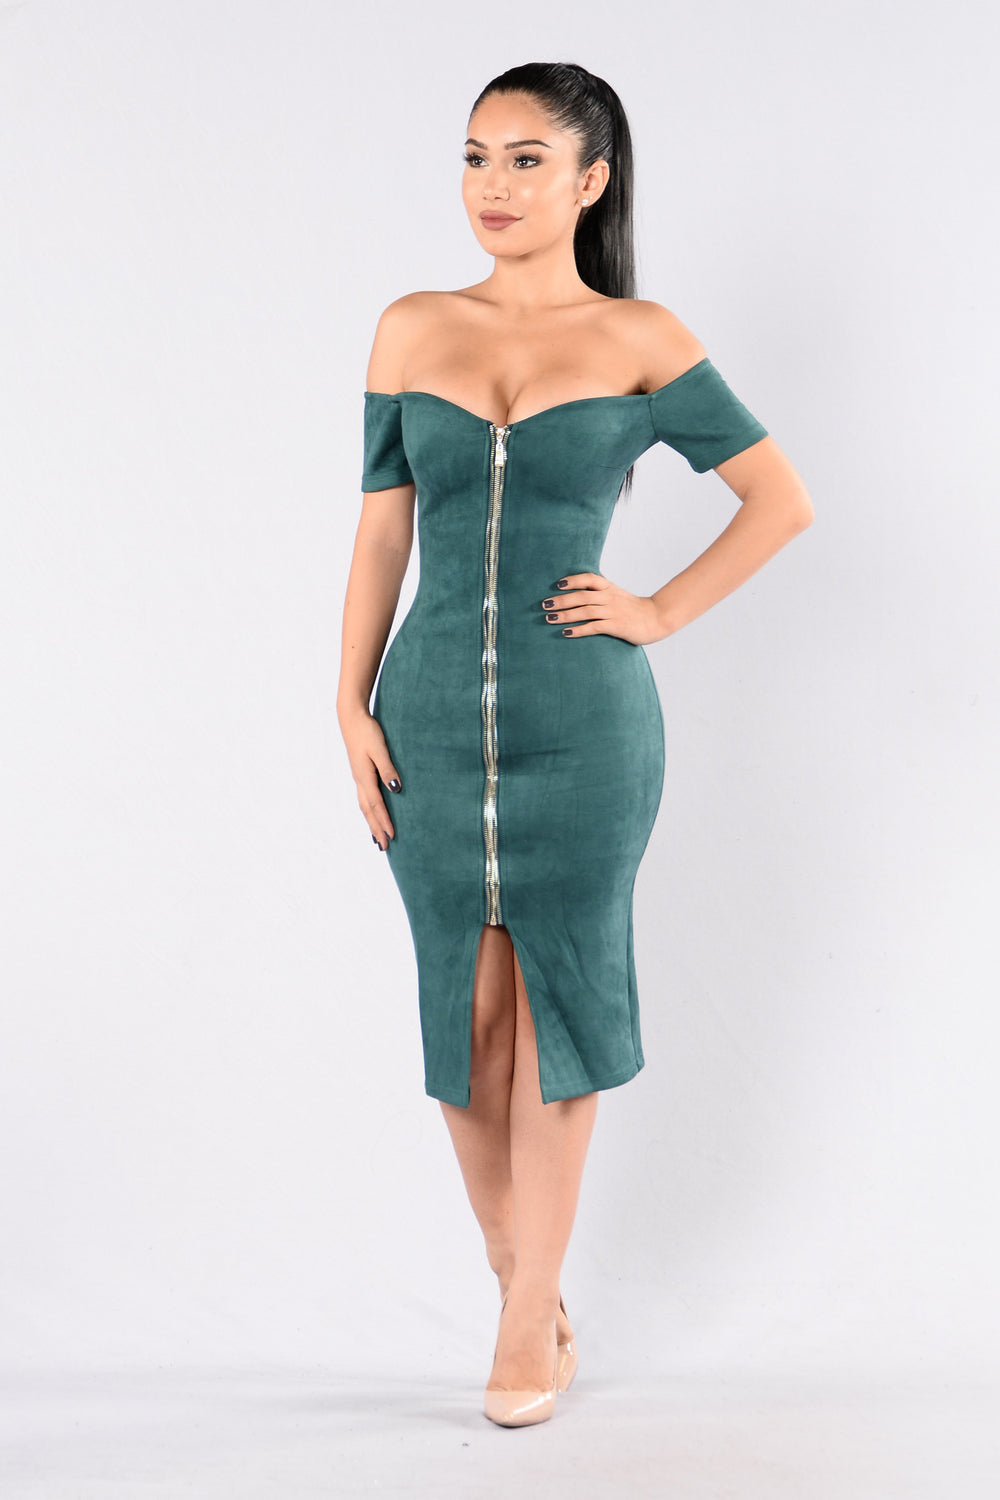 Zip It Dress - Teal